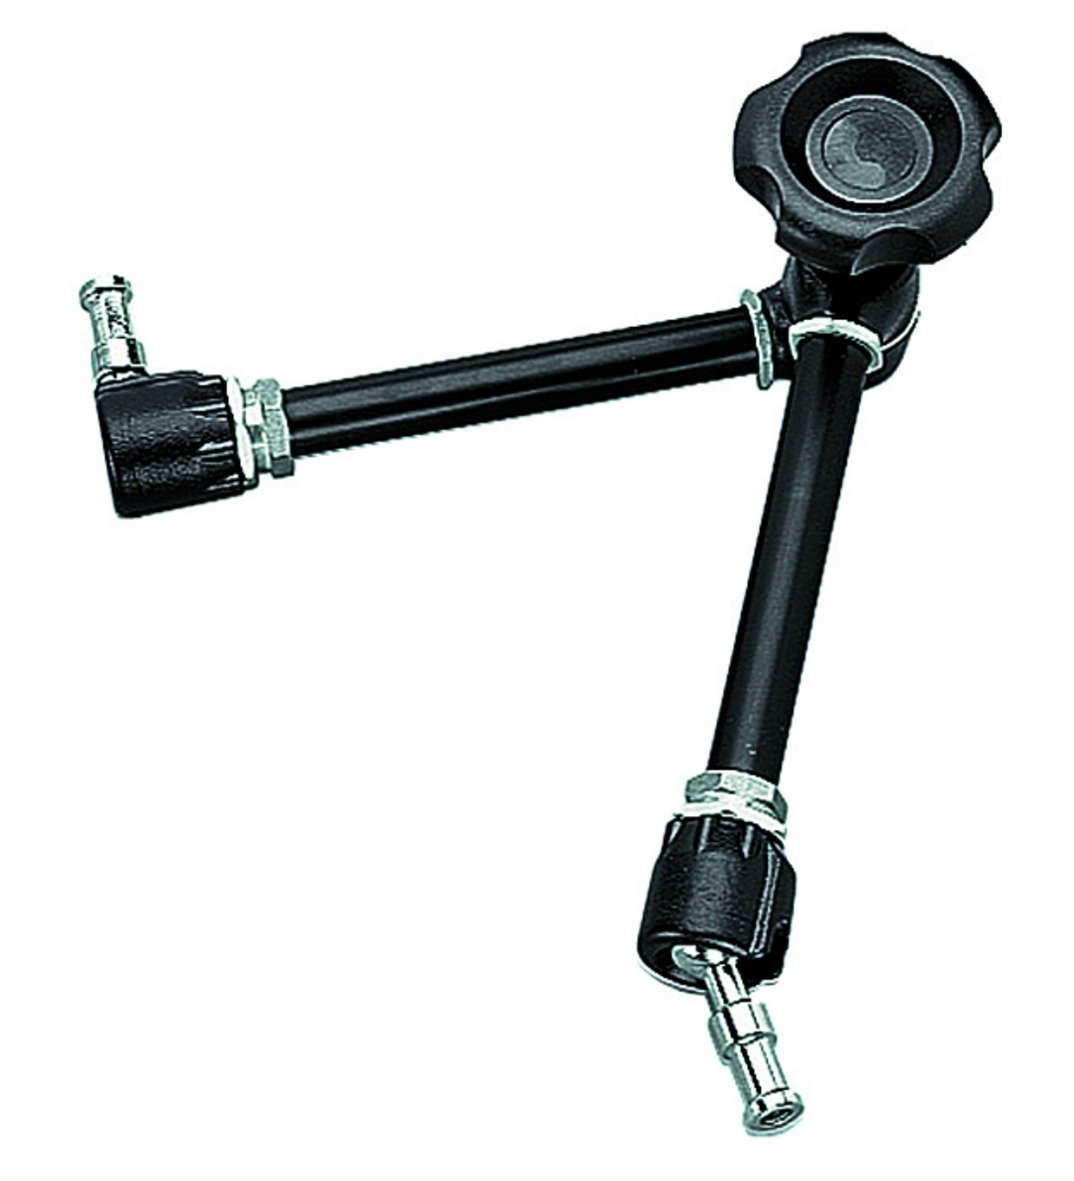 Manfrotto 244N Variable Friction Magic Arm without Camera Bracket (Black) by Manfrotto